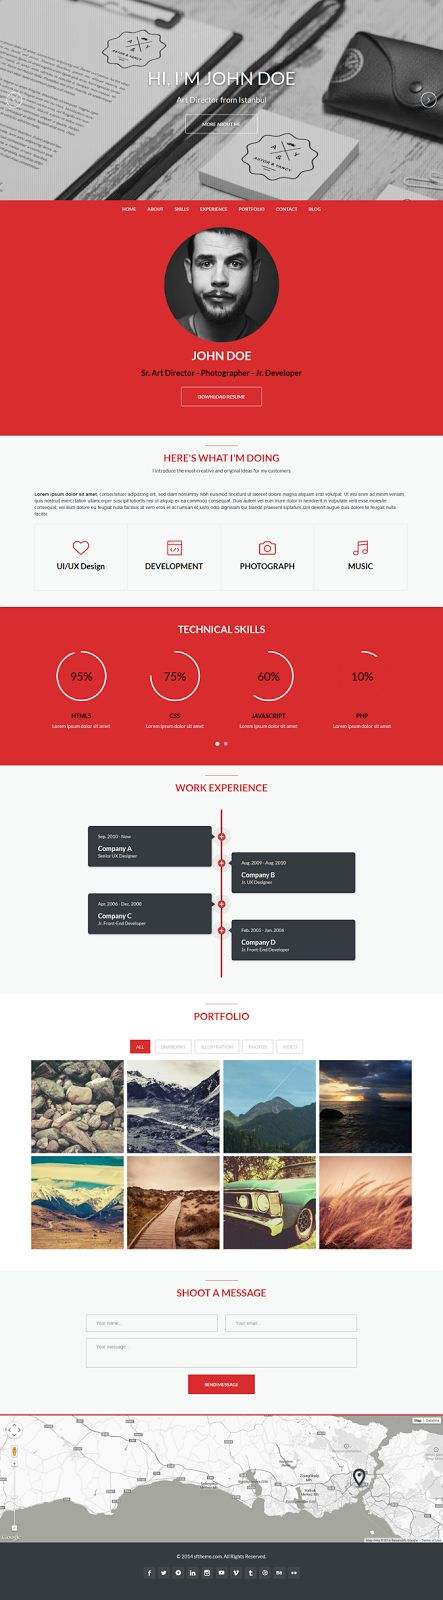 best 25 portfolio website ideas on pinterest website layout ux